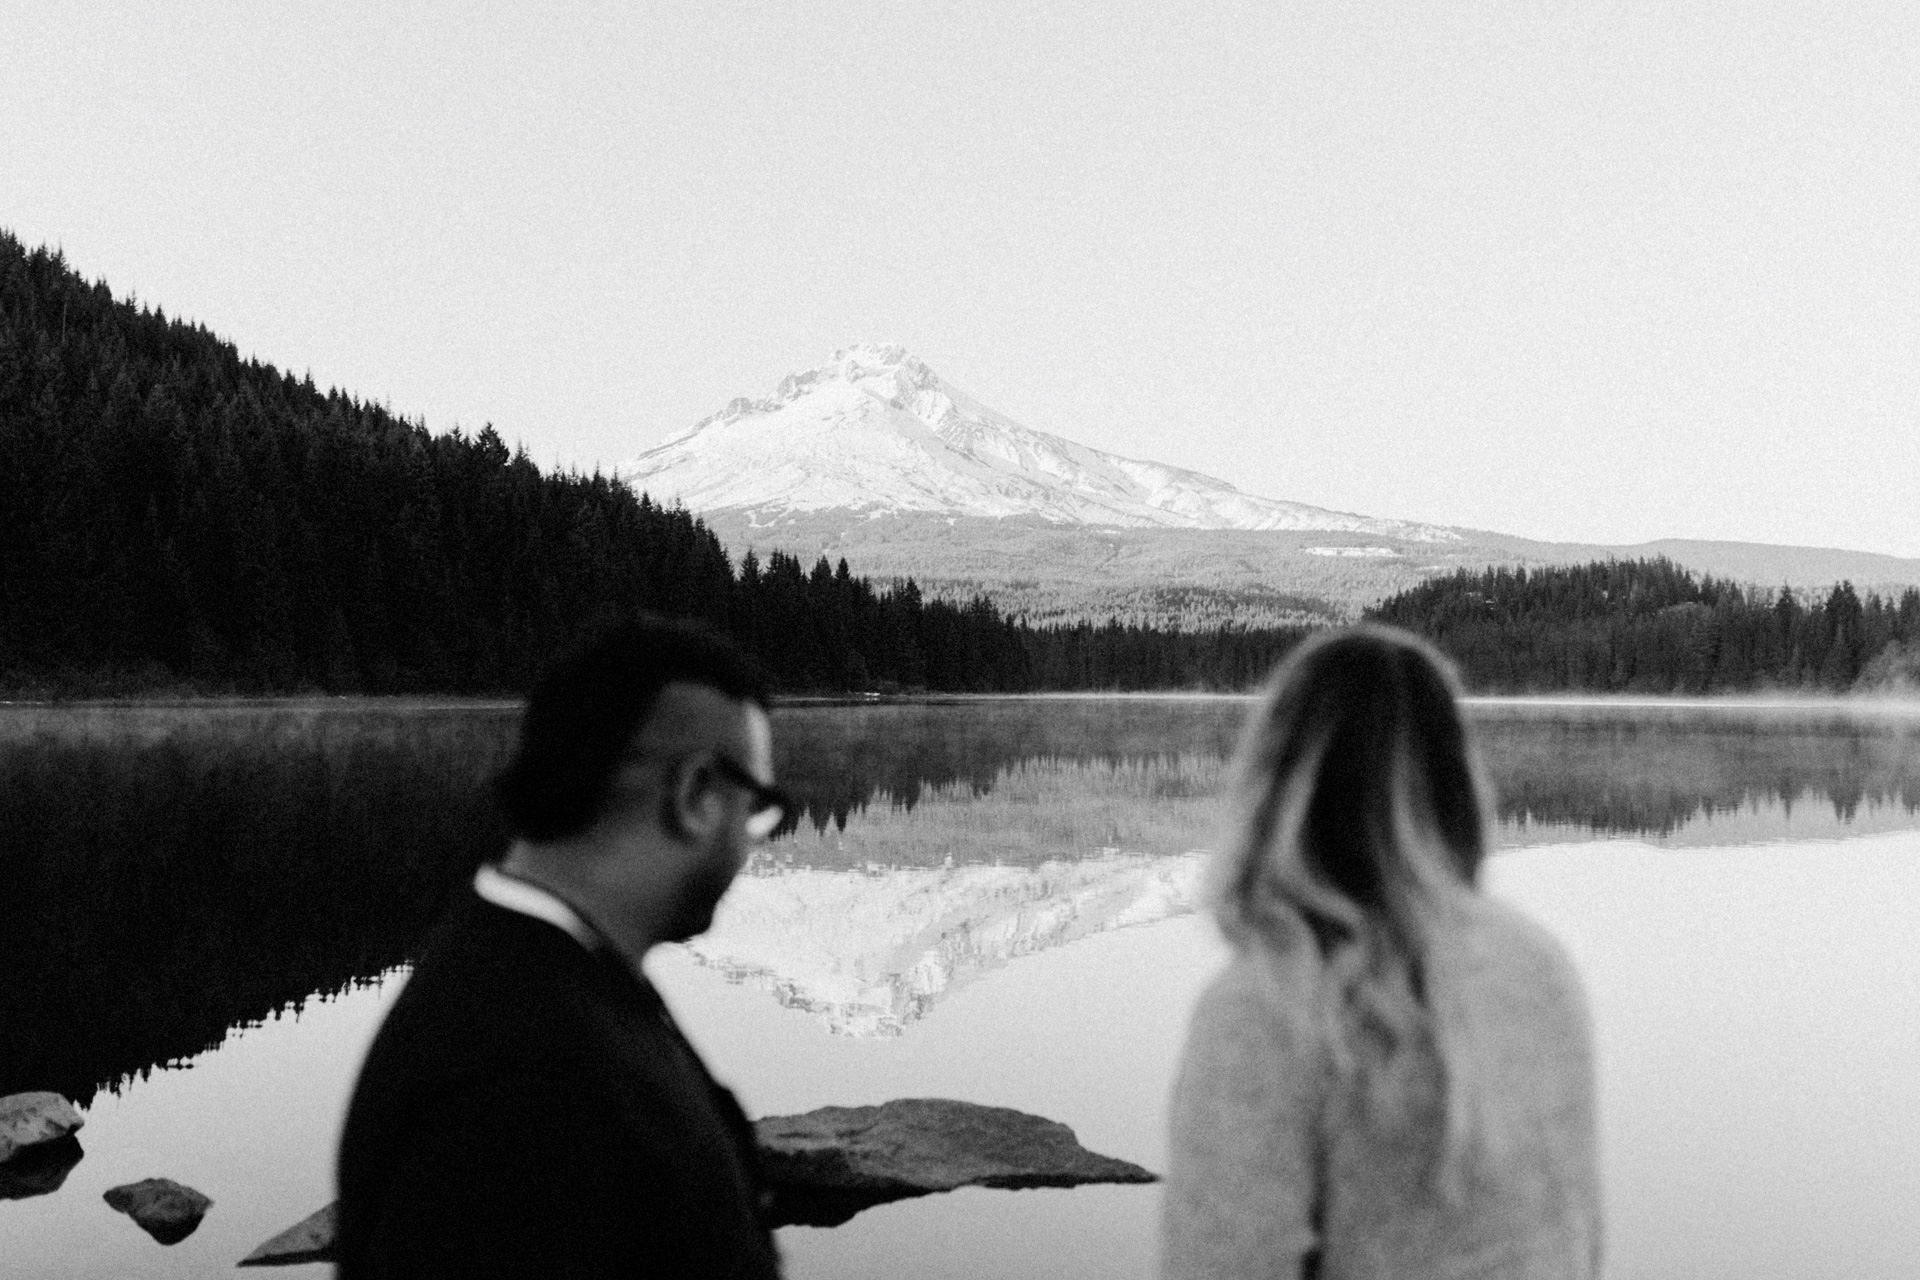 Mount hood and a couple looking out at the view of Trillium Lake